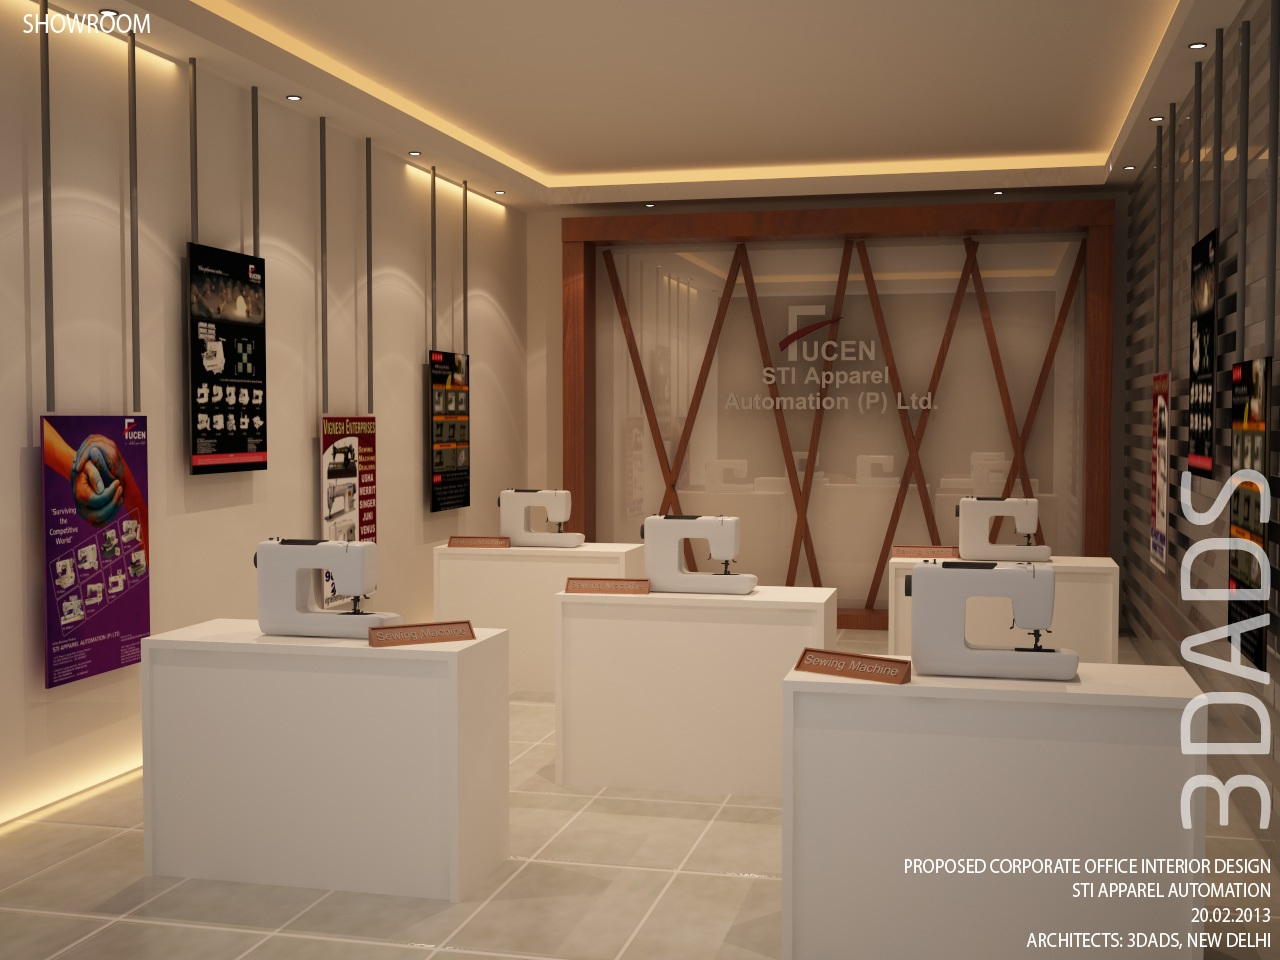 Showroom & Store Interior Design